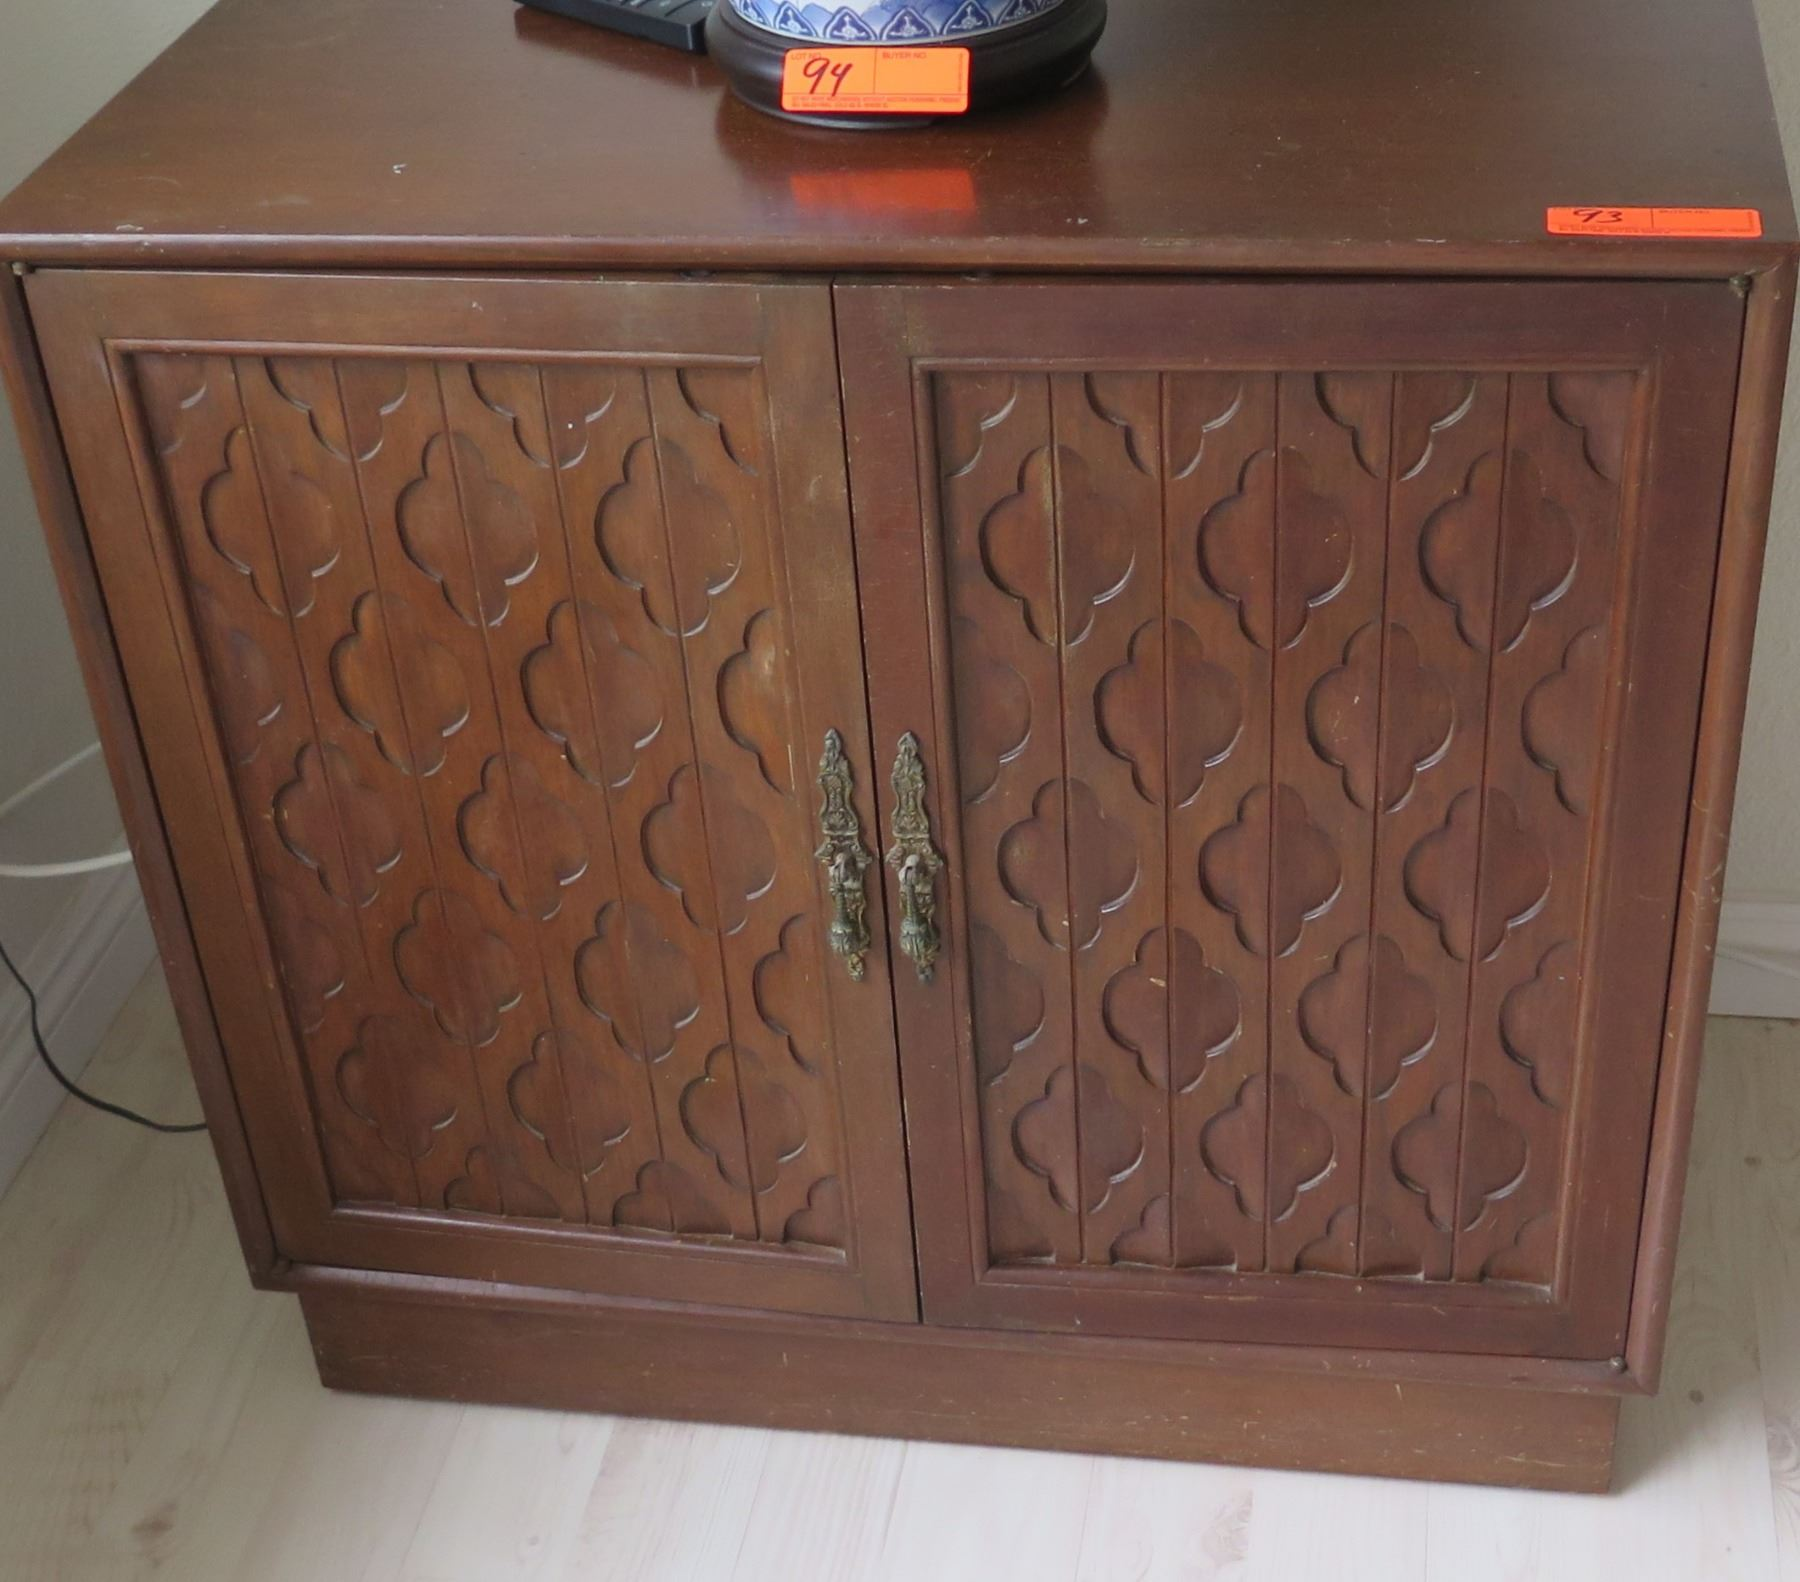 Image 1  Wood Cabinet w/ Carved Door Panels  32  x 15  ... & Wood Cabinet w/ Carved Door Panels  32